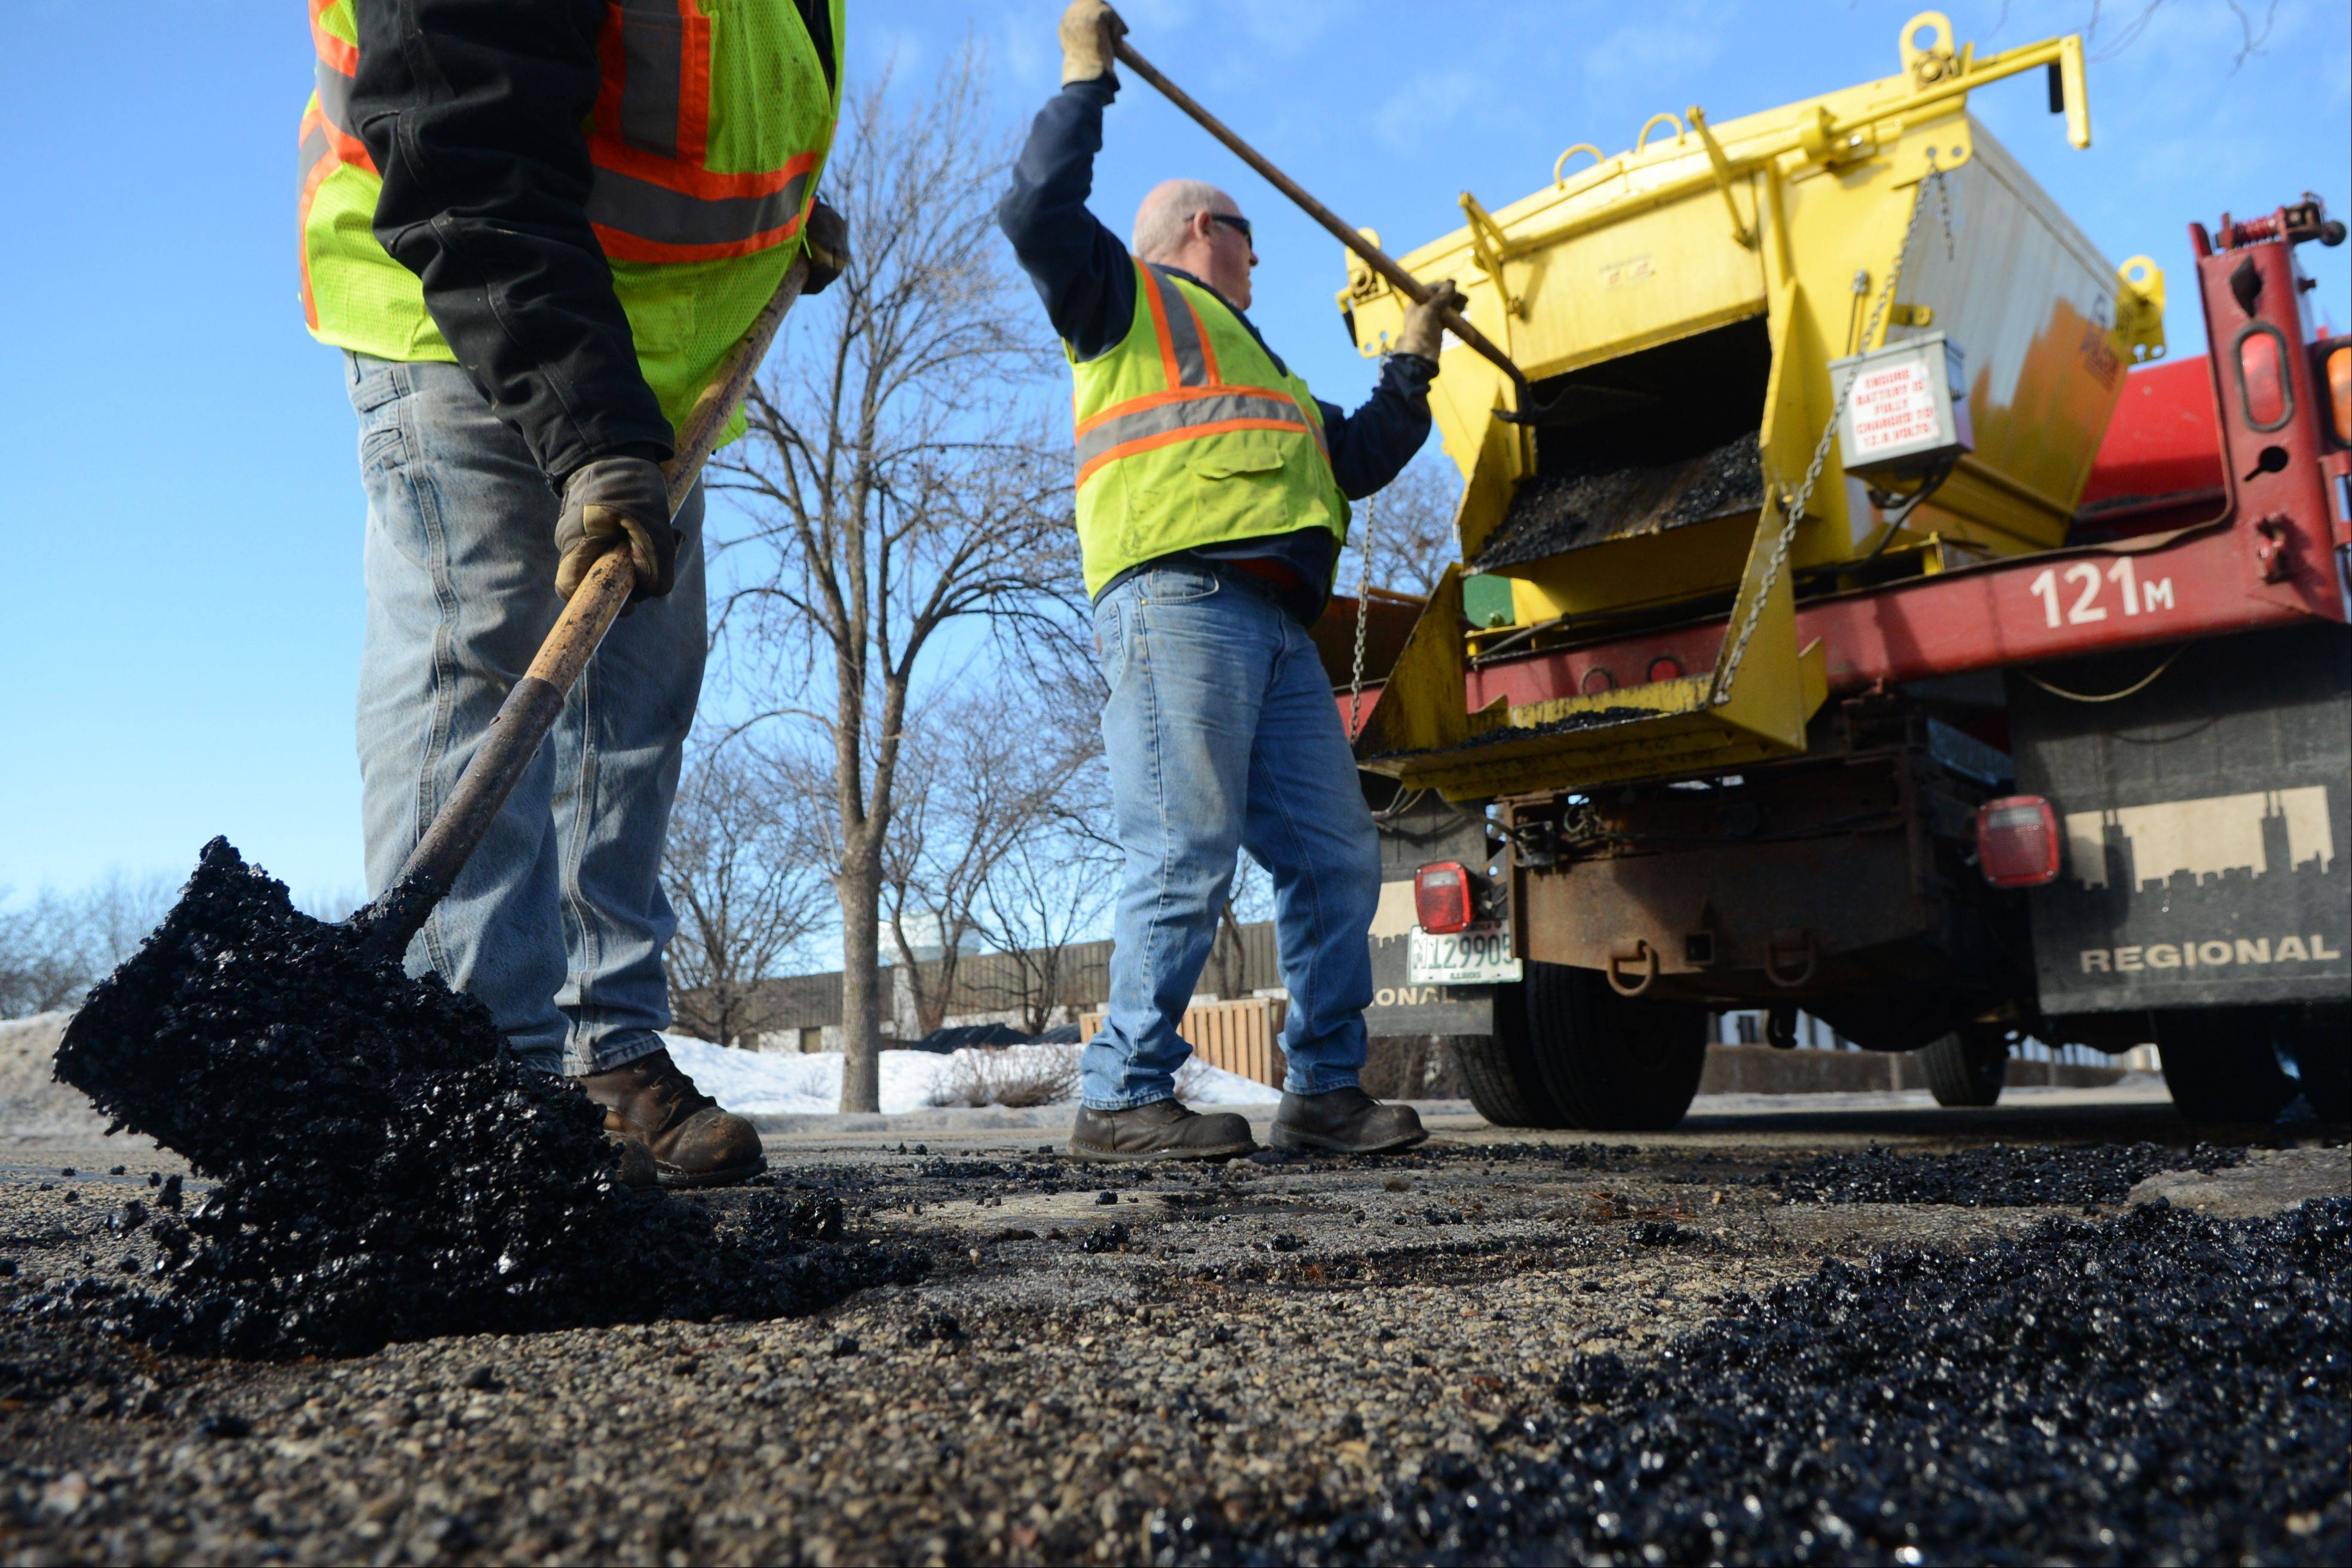 Arlington Heights Public Works employees Terry Koeppl, left, and Ken Tullar, fill potholes on Tonne Road Monday afternoon. The potholes were wide, but not deep, along the road. Koeppl said they want to patch them when they are like this so they don't turn into bigger potholes.